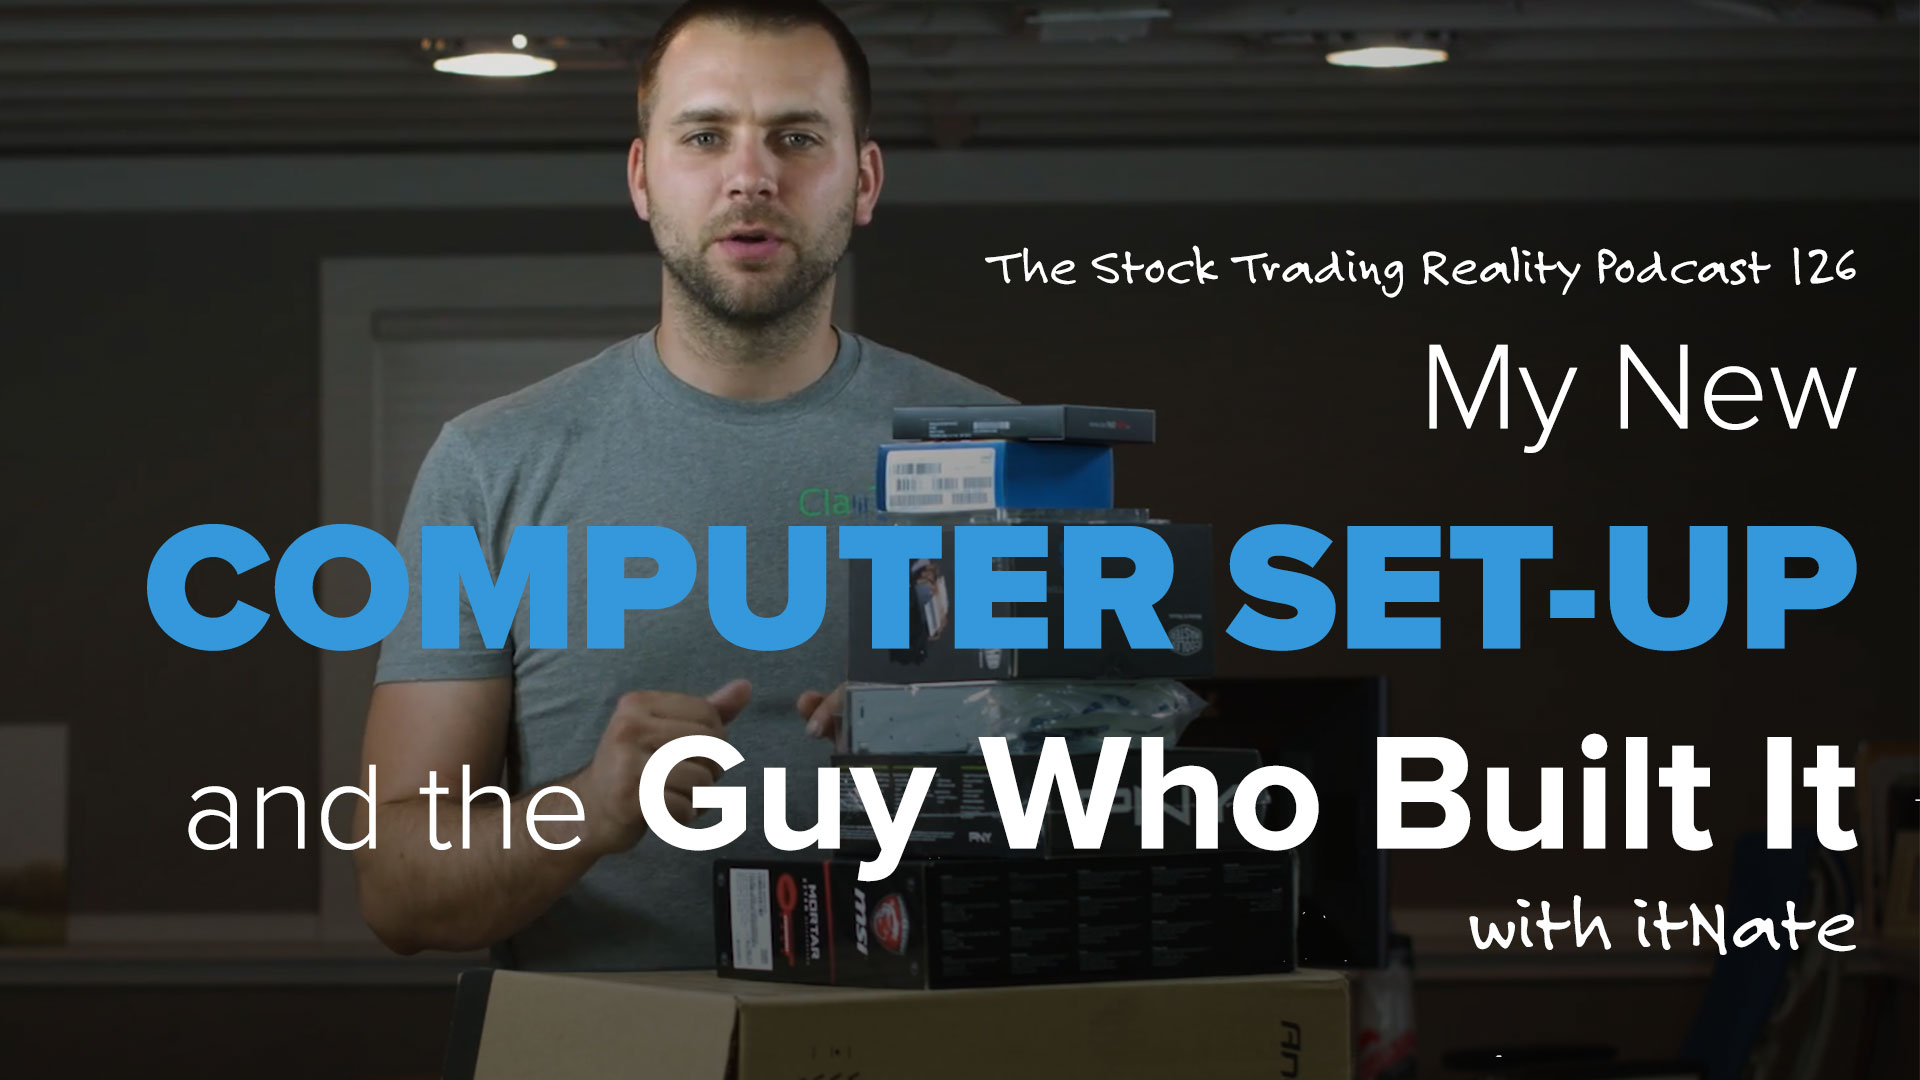 STR 126: My New Computer Set-Up and the Guy Who Built It